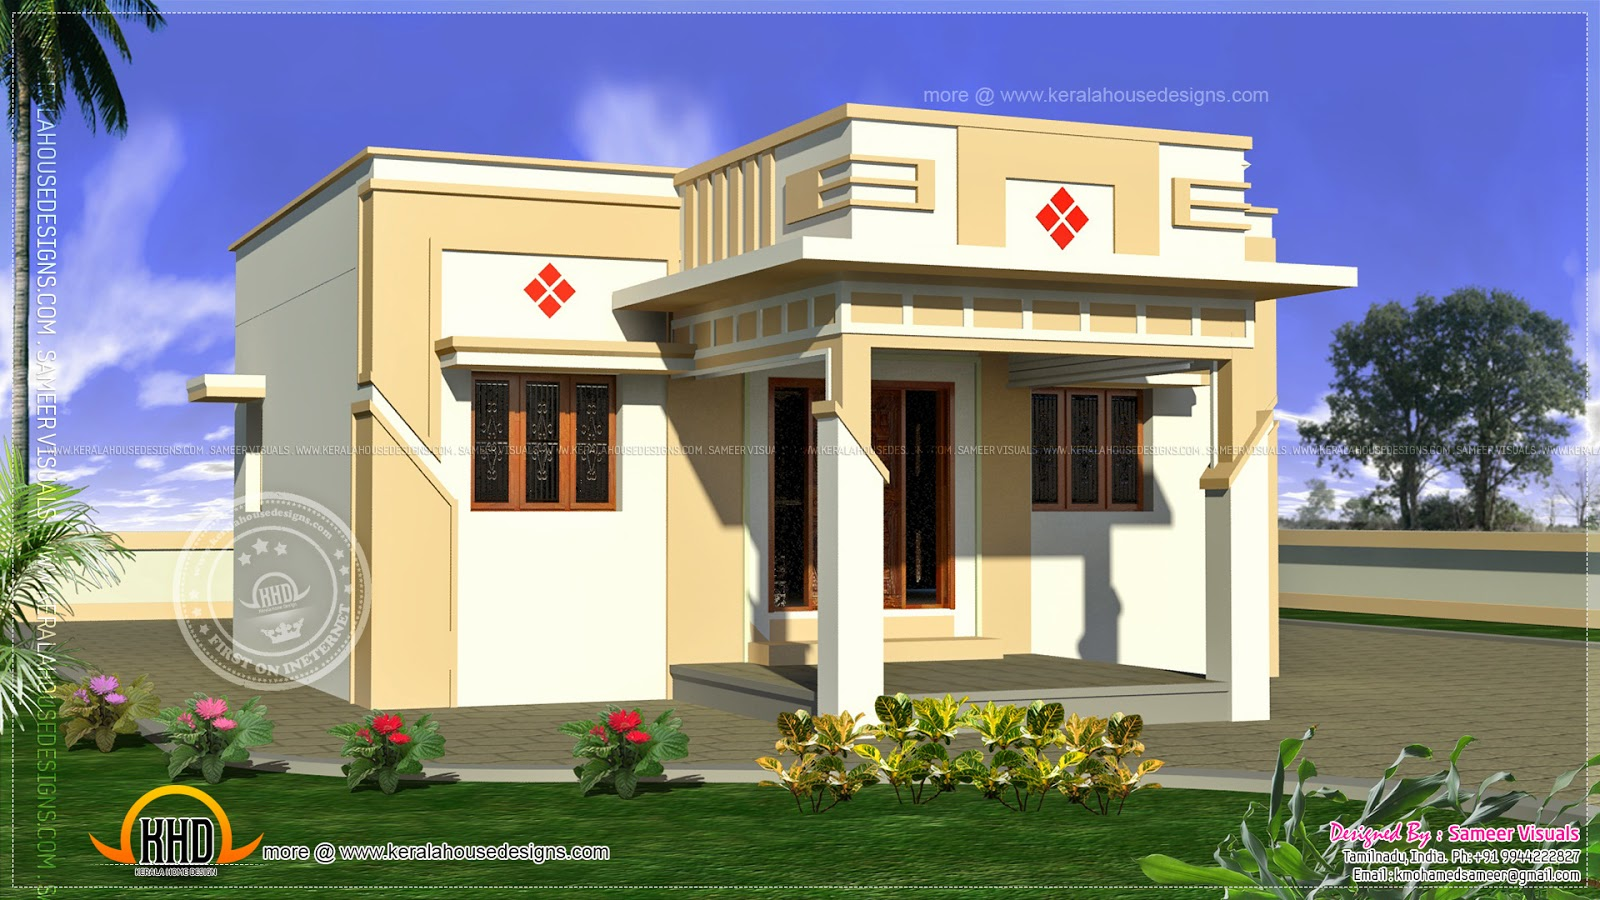 Low cost tamilnadu house kerala home design and floor plans for 2 bhk house plans south indian style